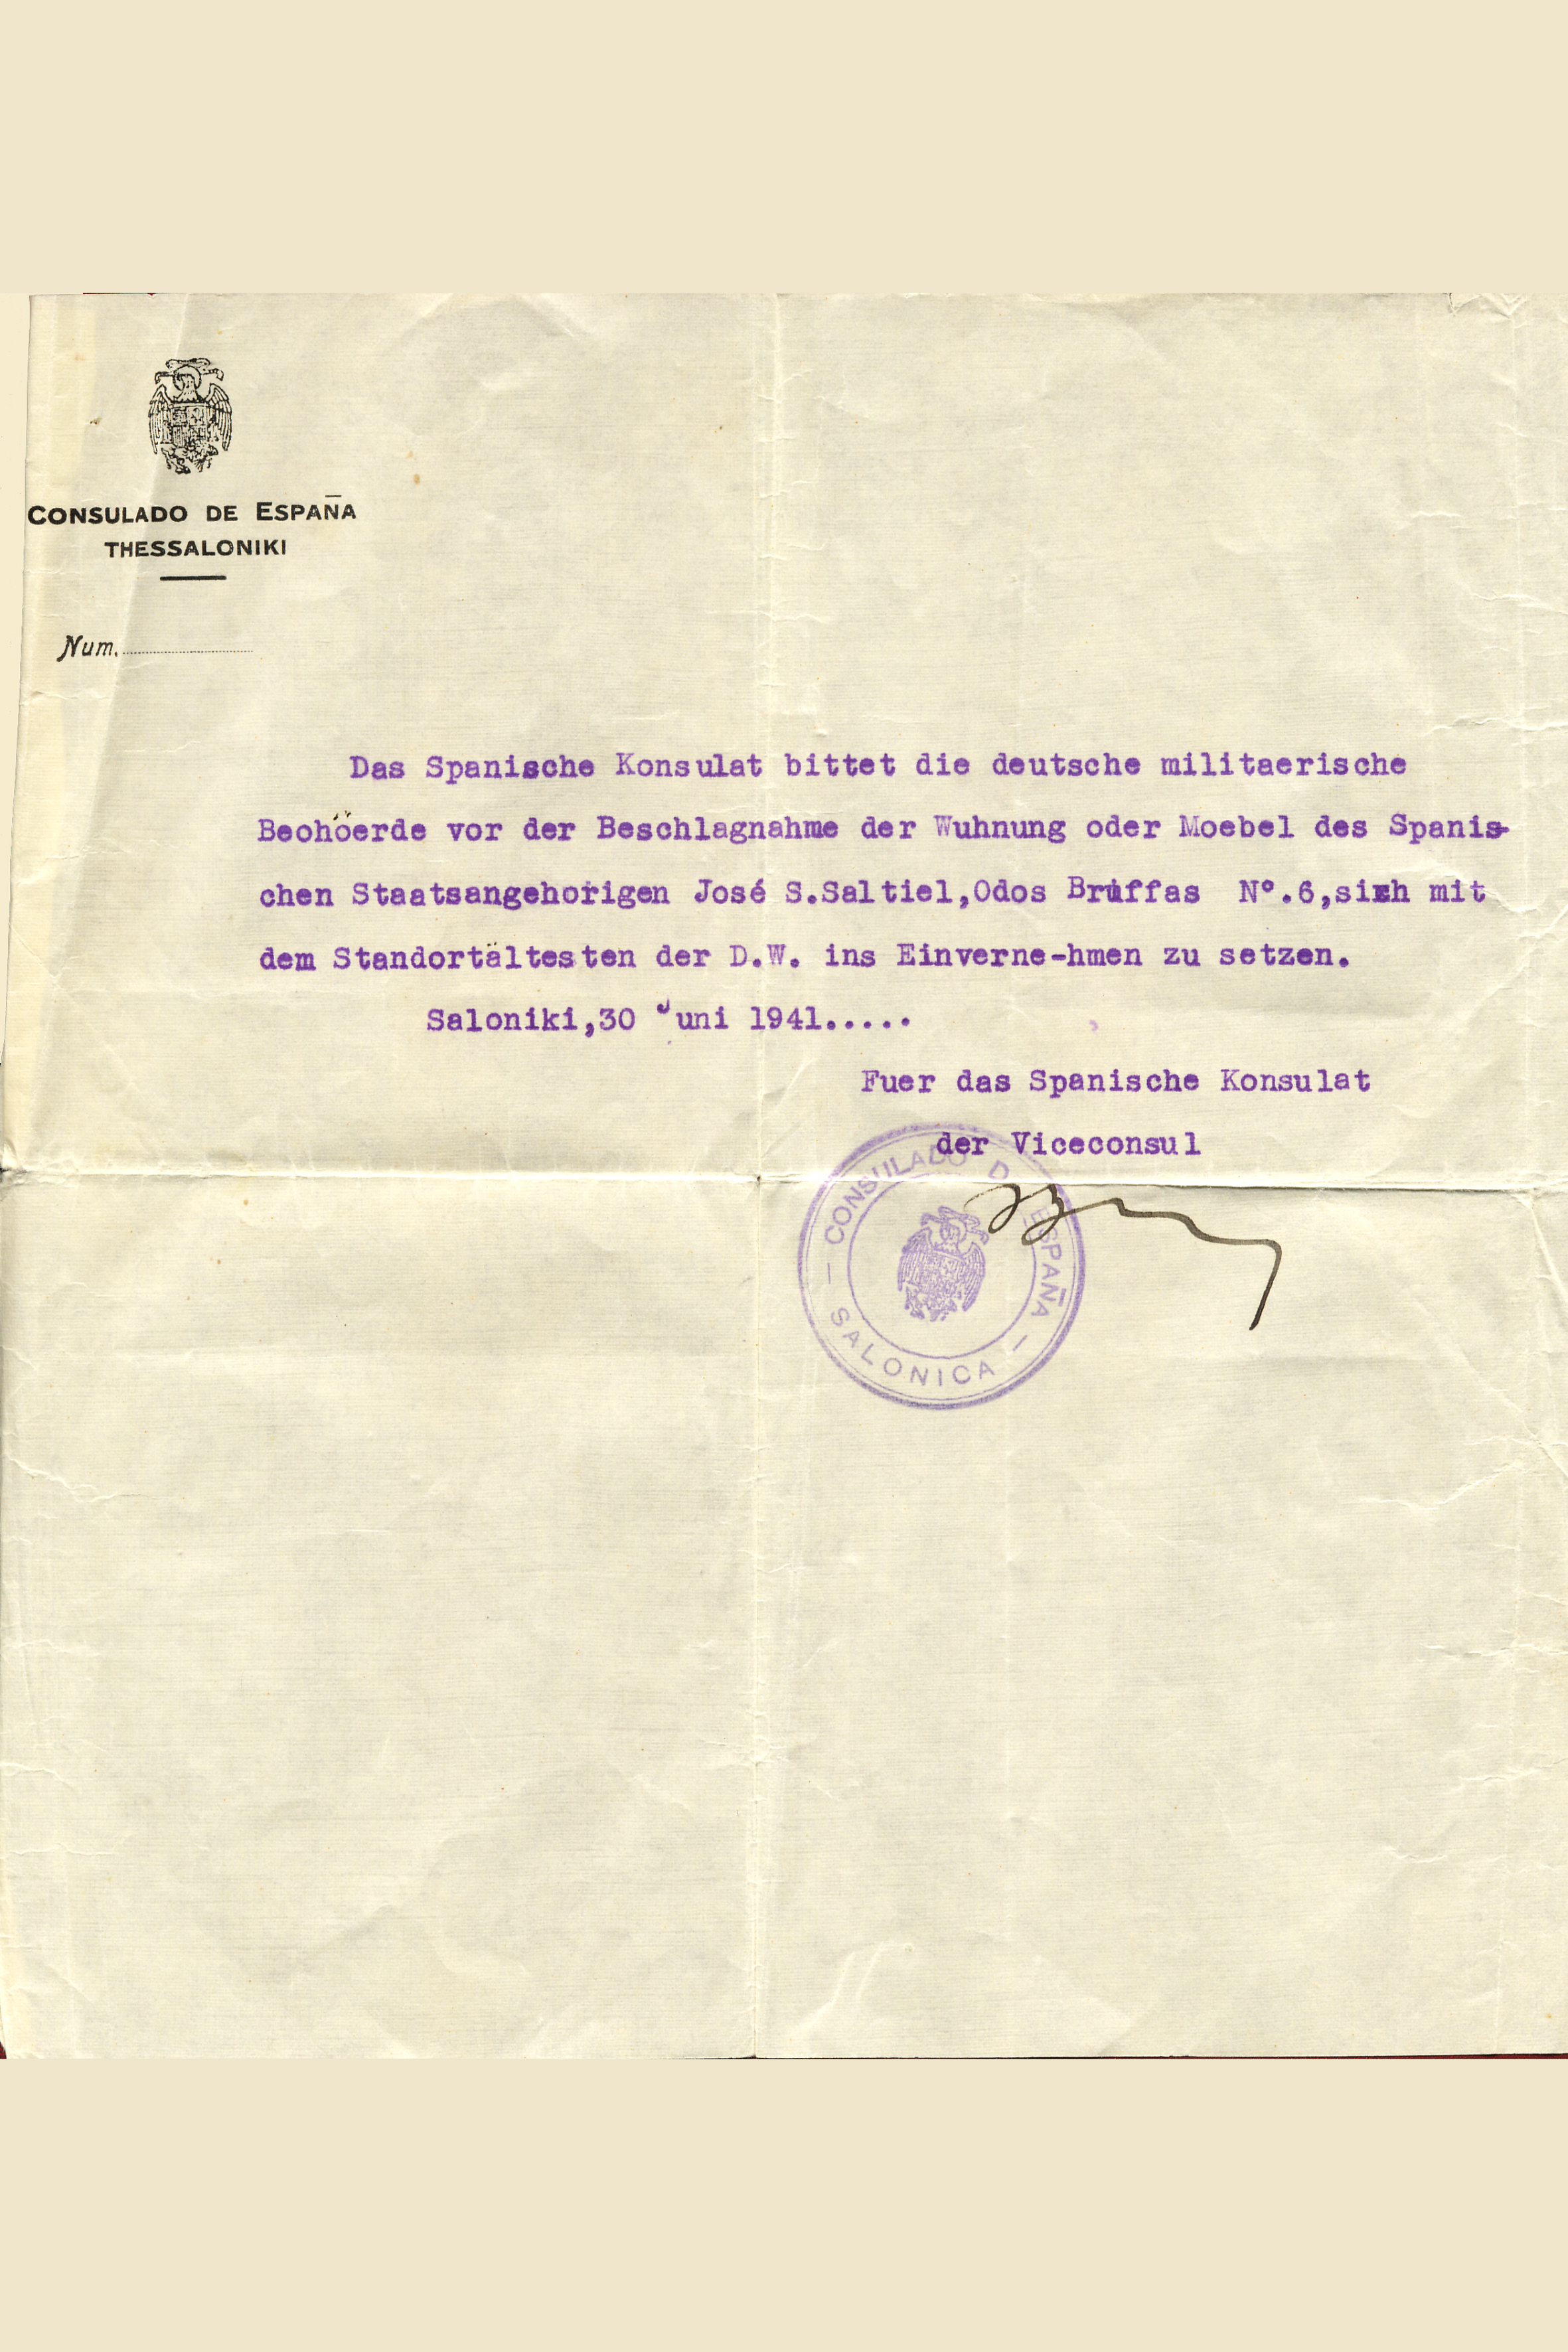 Certificate for house and furniture confiscation